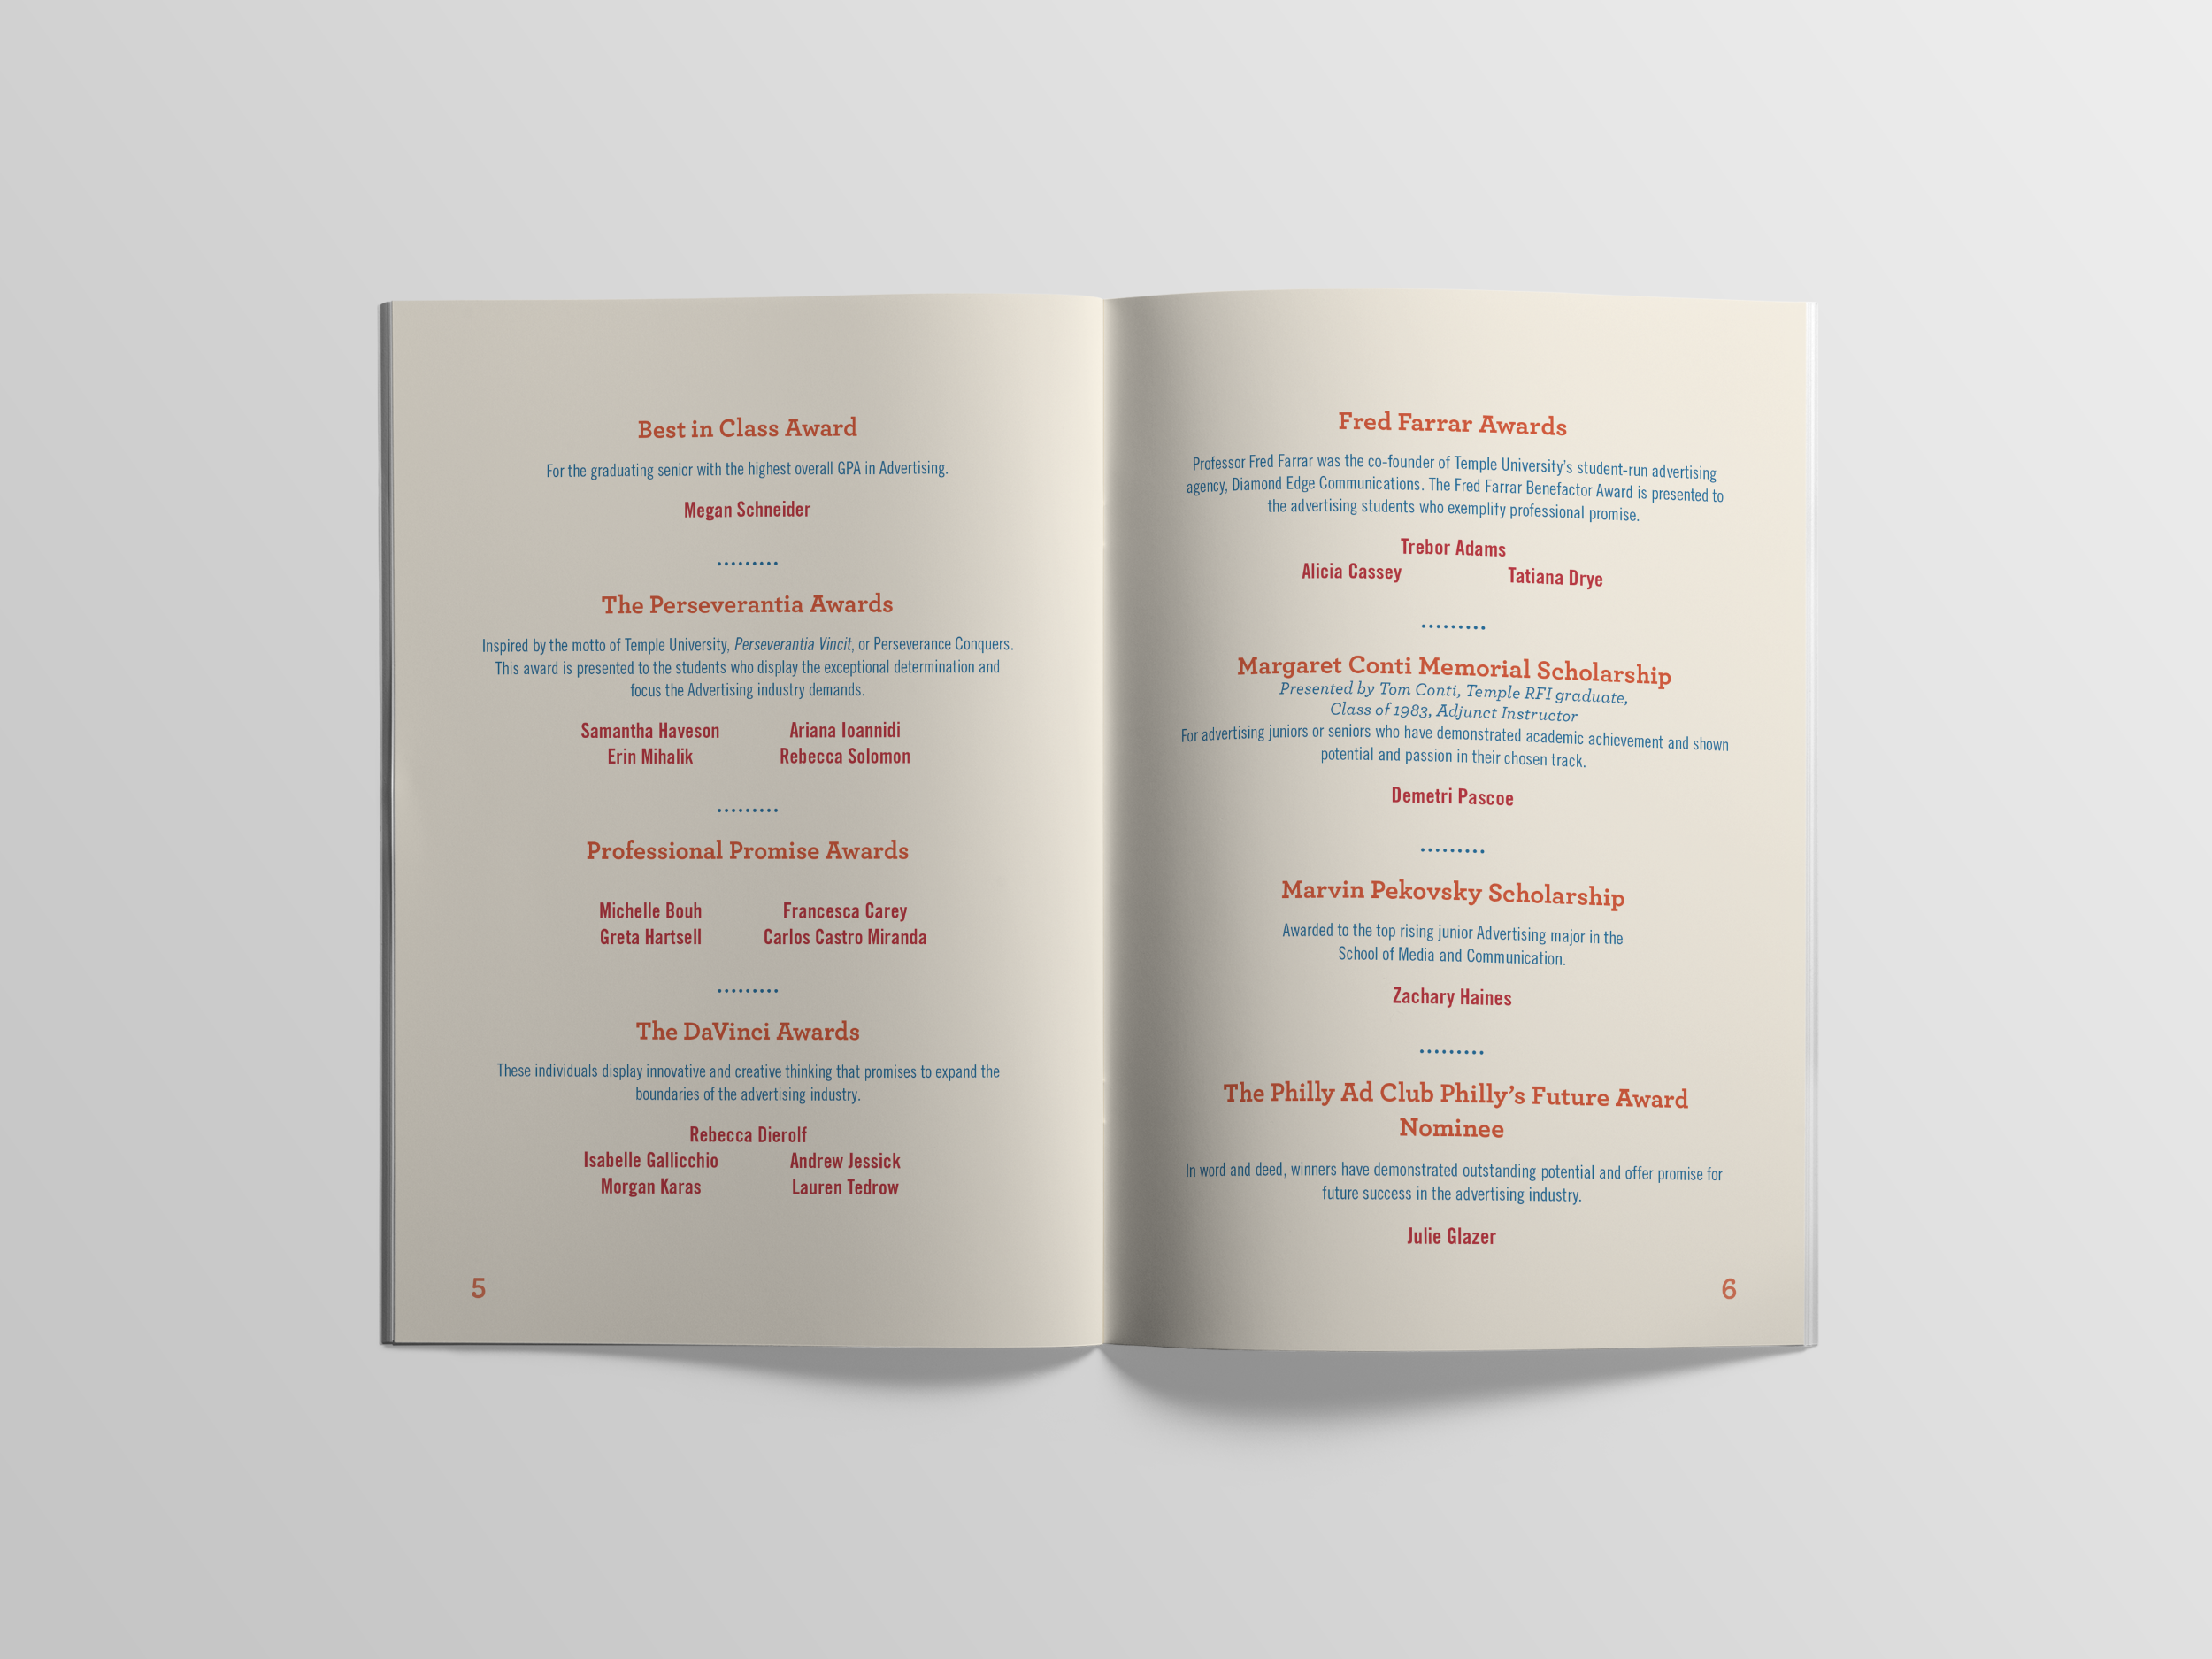 TADA_Booklet_Open3.png